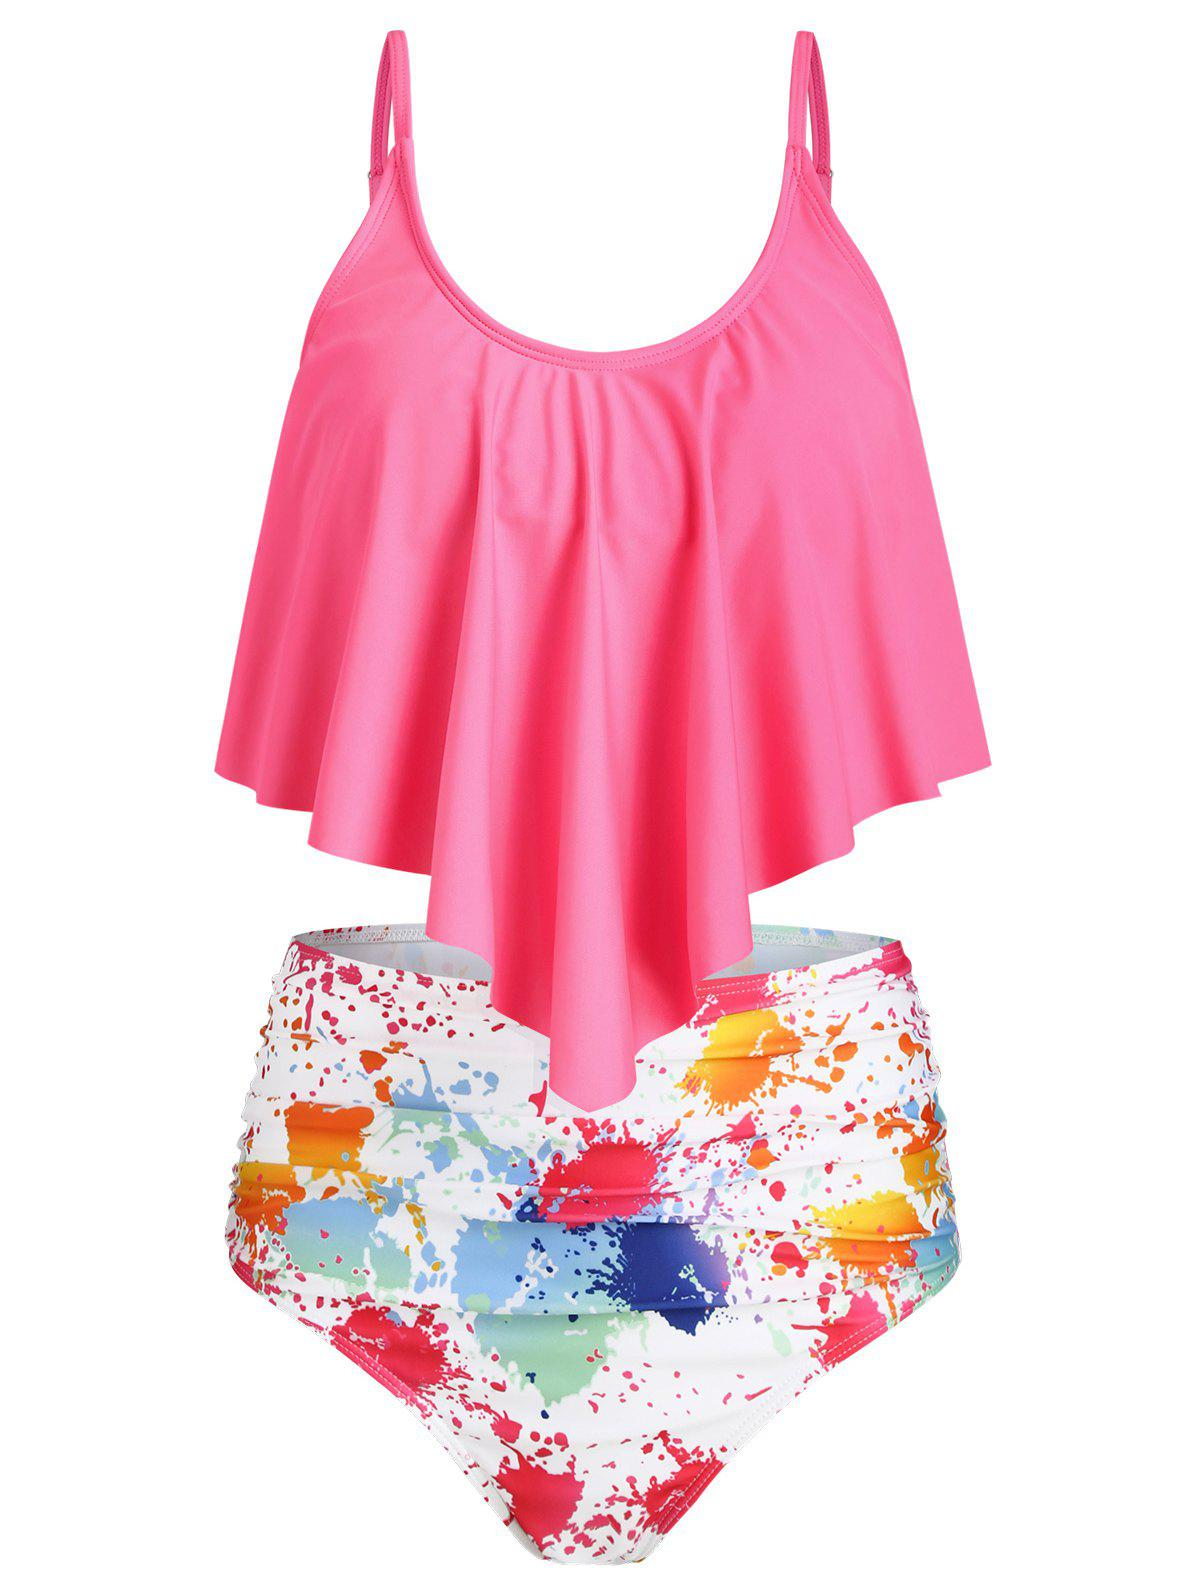 Splash Tie Dye Ruched Overlay Tankini Swimsuit - ROSE RED XL